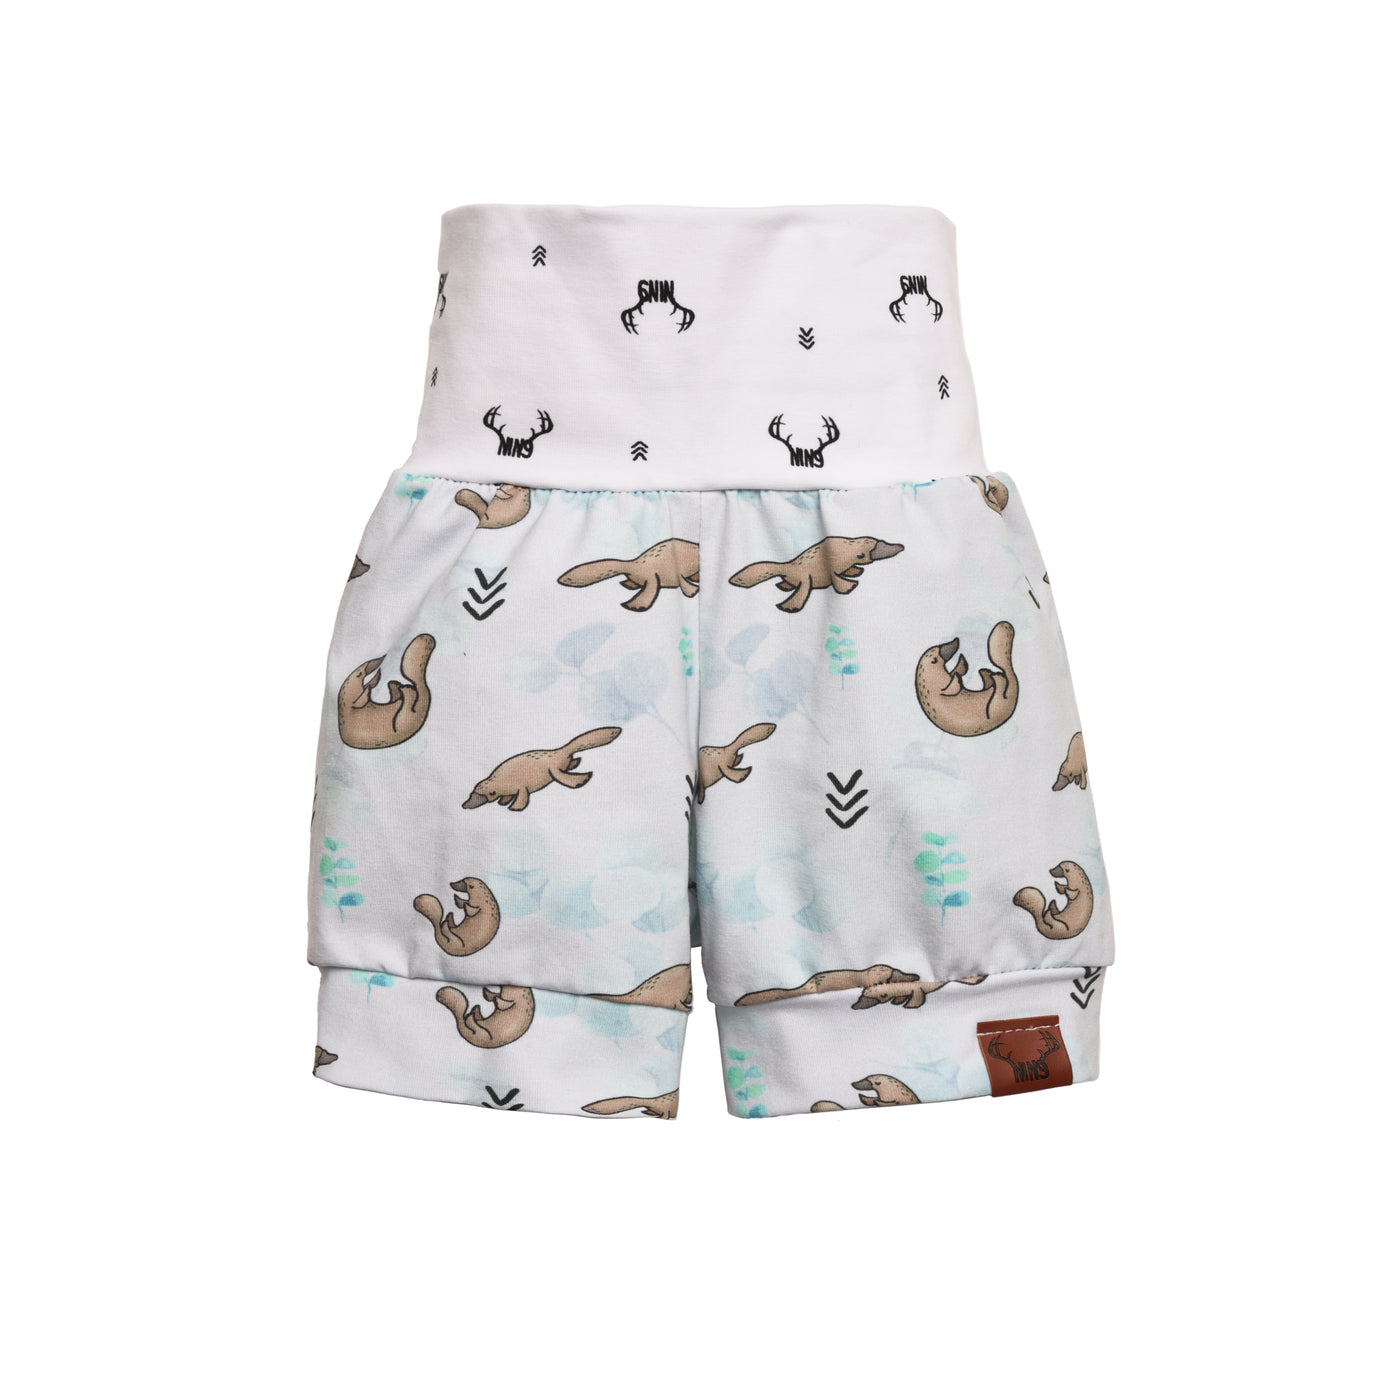 Platypus grow with me shorts